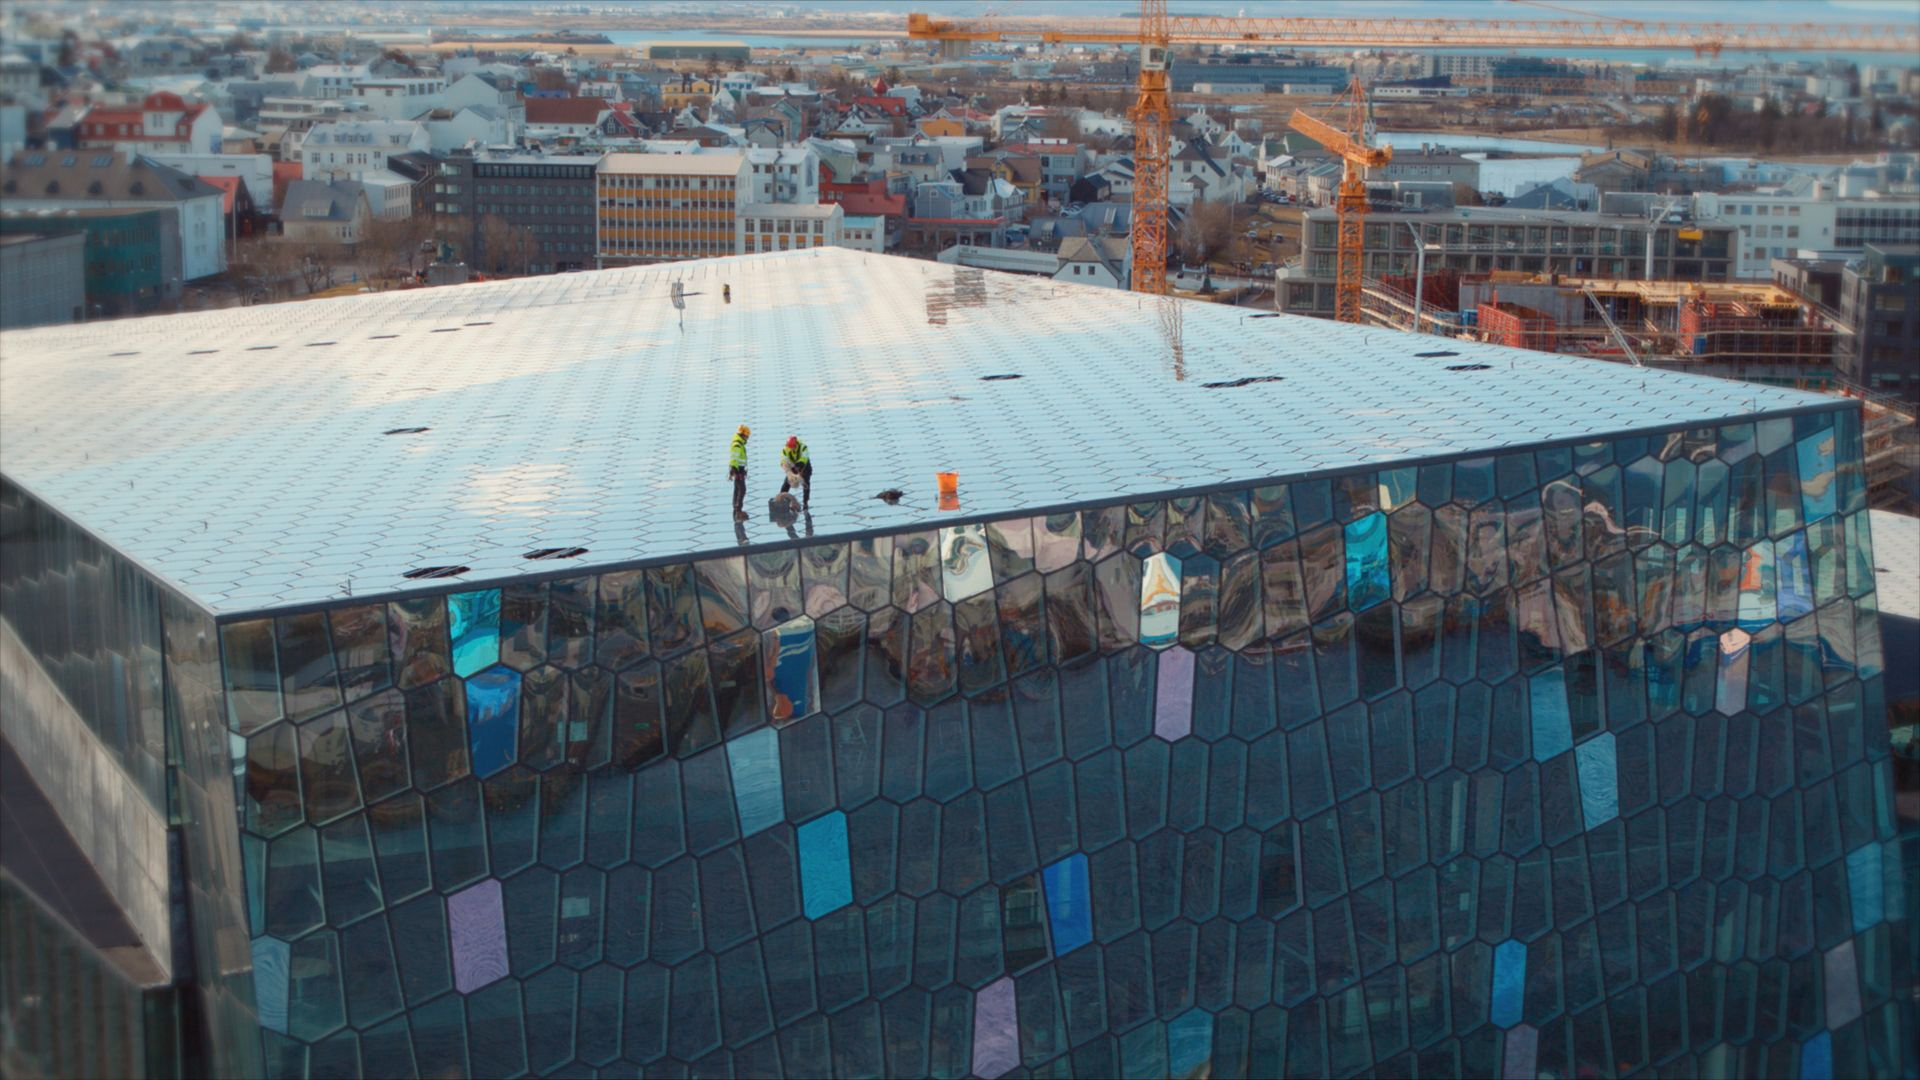 Window cleaners on top of the Harpa Concert Hall. This is from Europe from above, season 4. [Photo of the day - September 2021]